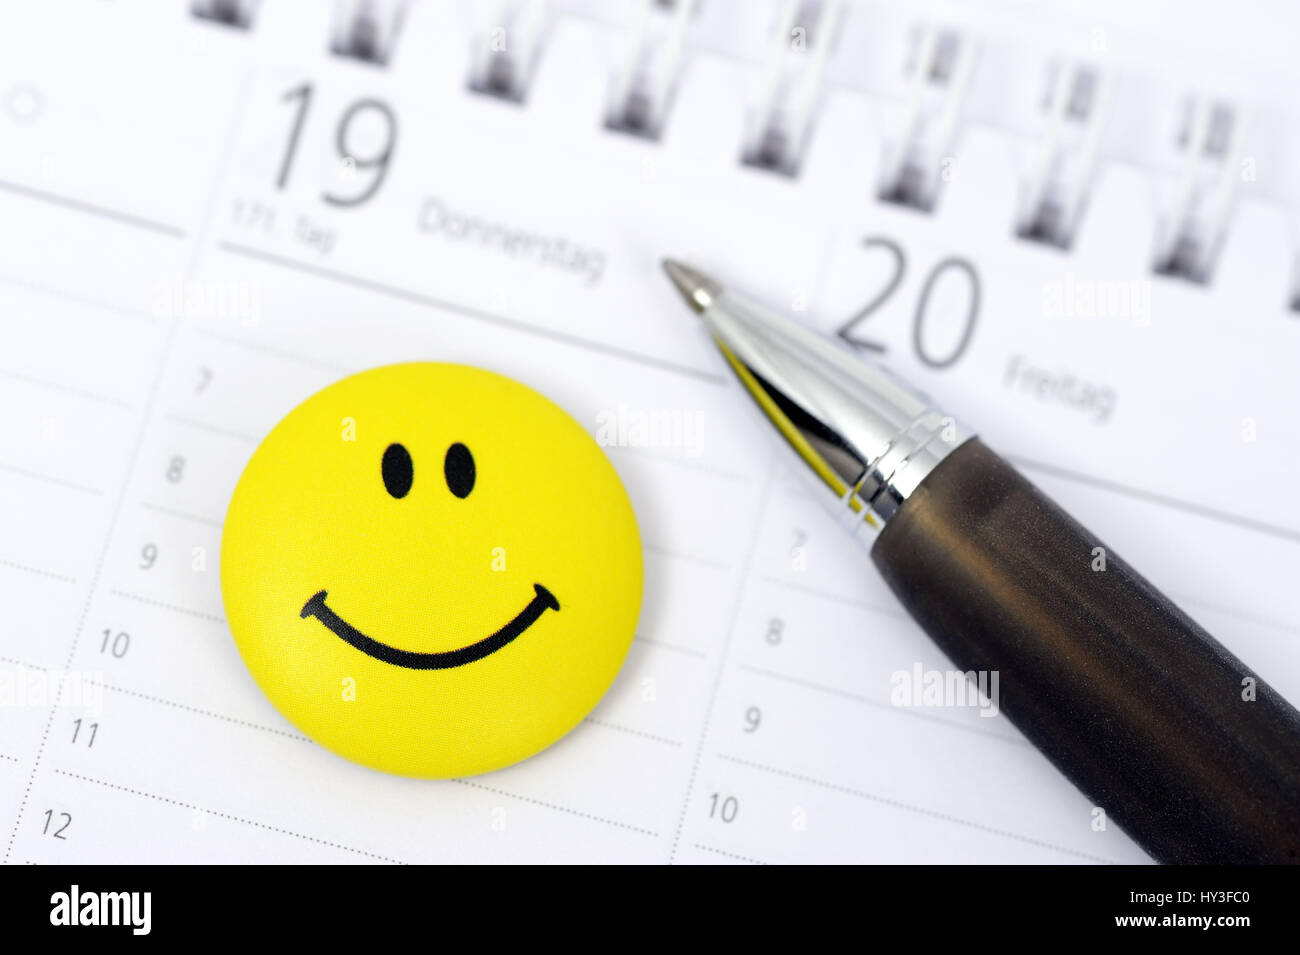 Appointment calendar with Smiley, successful appointment, Terminkalender mit Smiley, erfolgreicher Termin - Stock Image